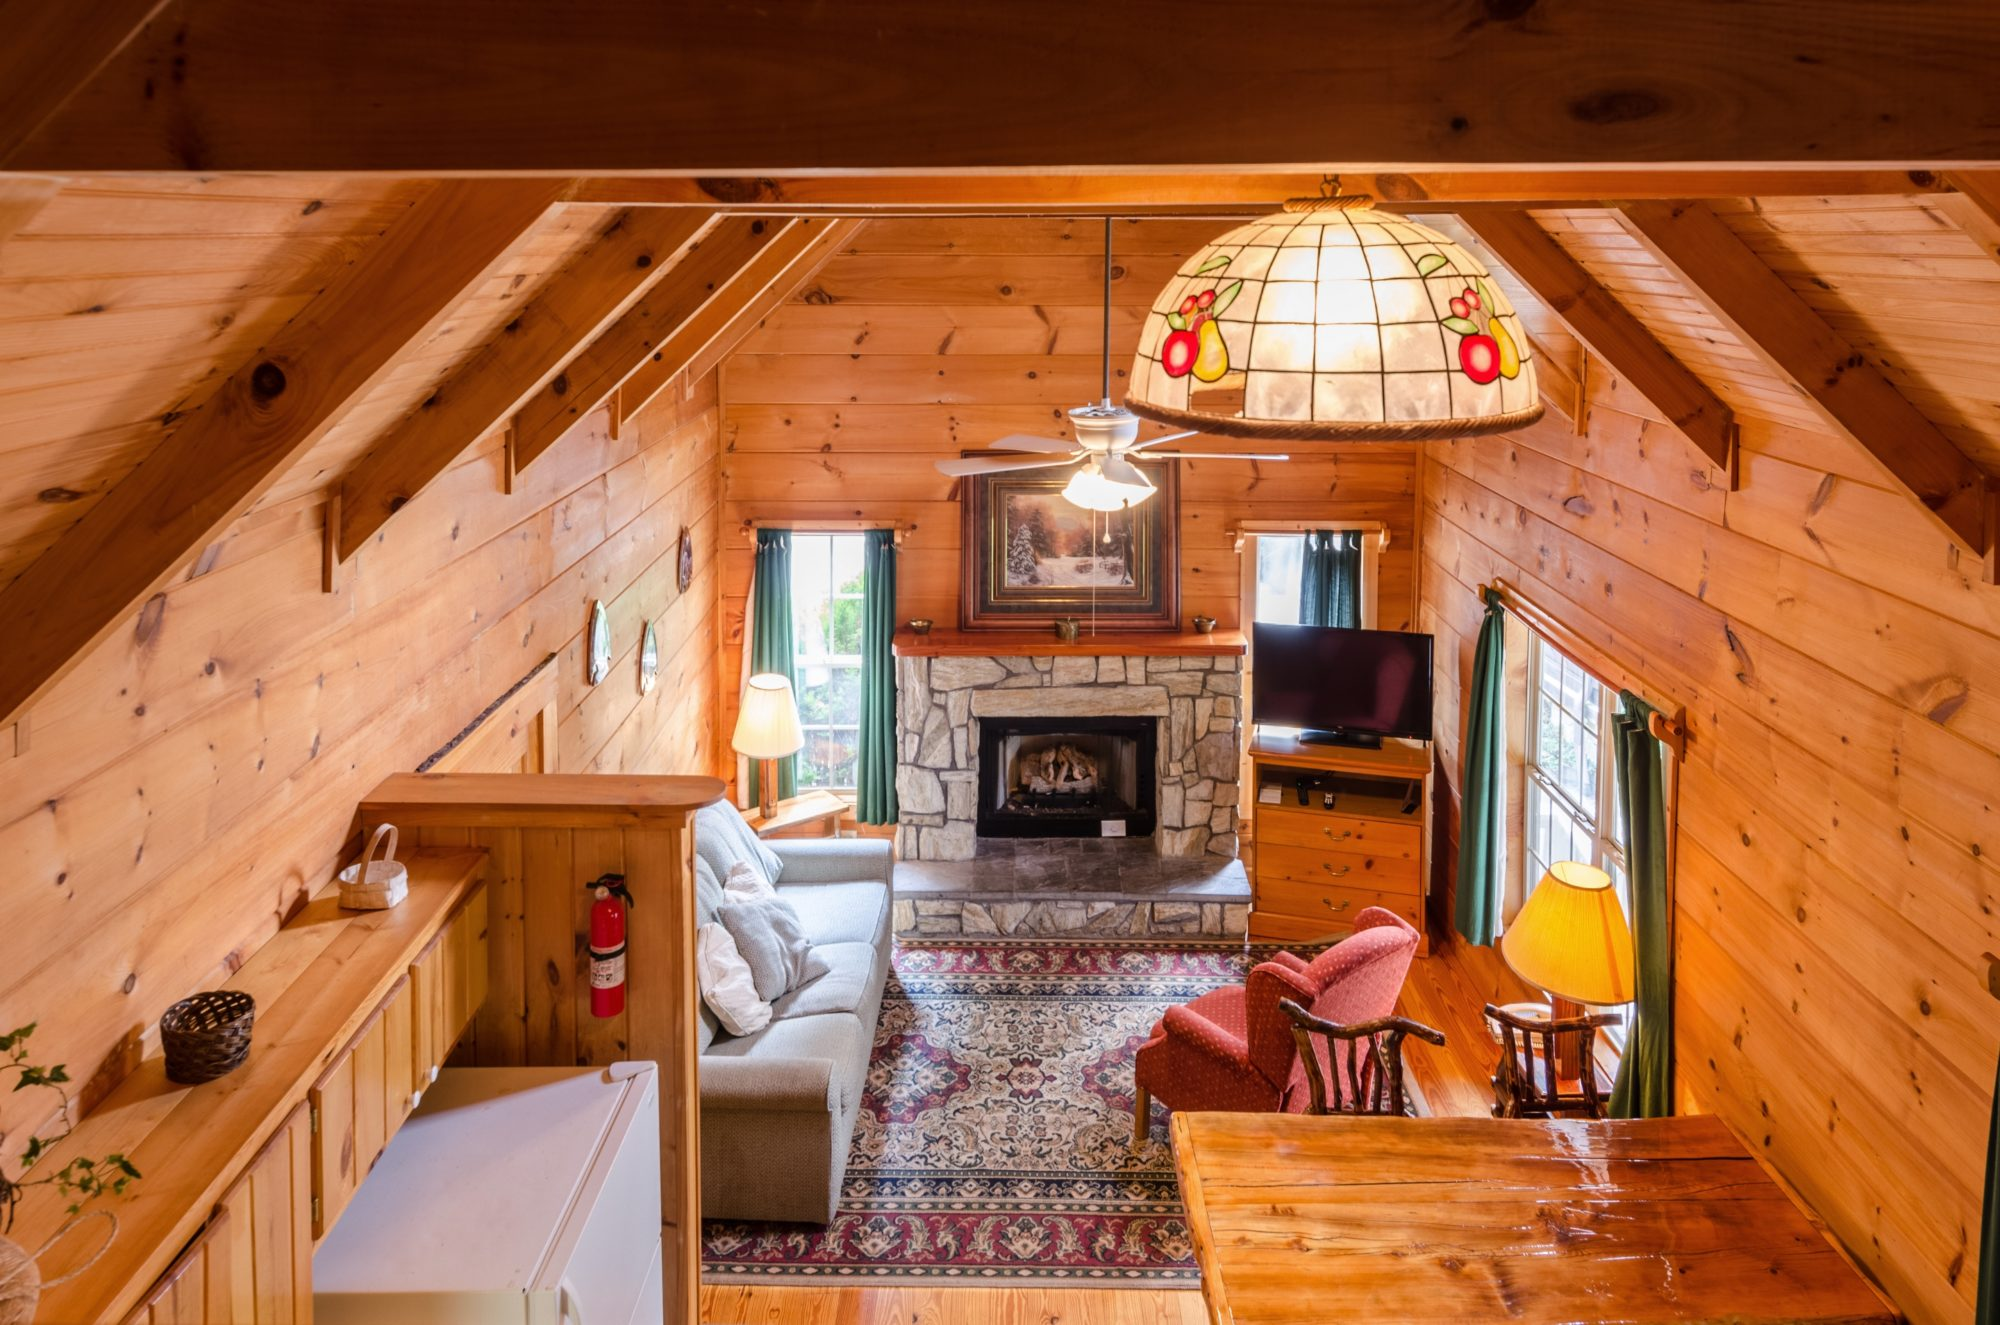 Cabin interior viewed from loft bedroom area with decorative ceiling lampshade and fire extinguisher looking down on sitting area with sofa, easy chair, side table with lap, fireplace, corner wooden storage unit with flat screen TV, wooden flooring with large rug